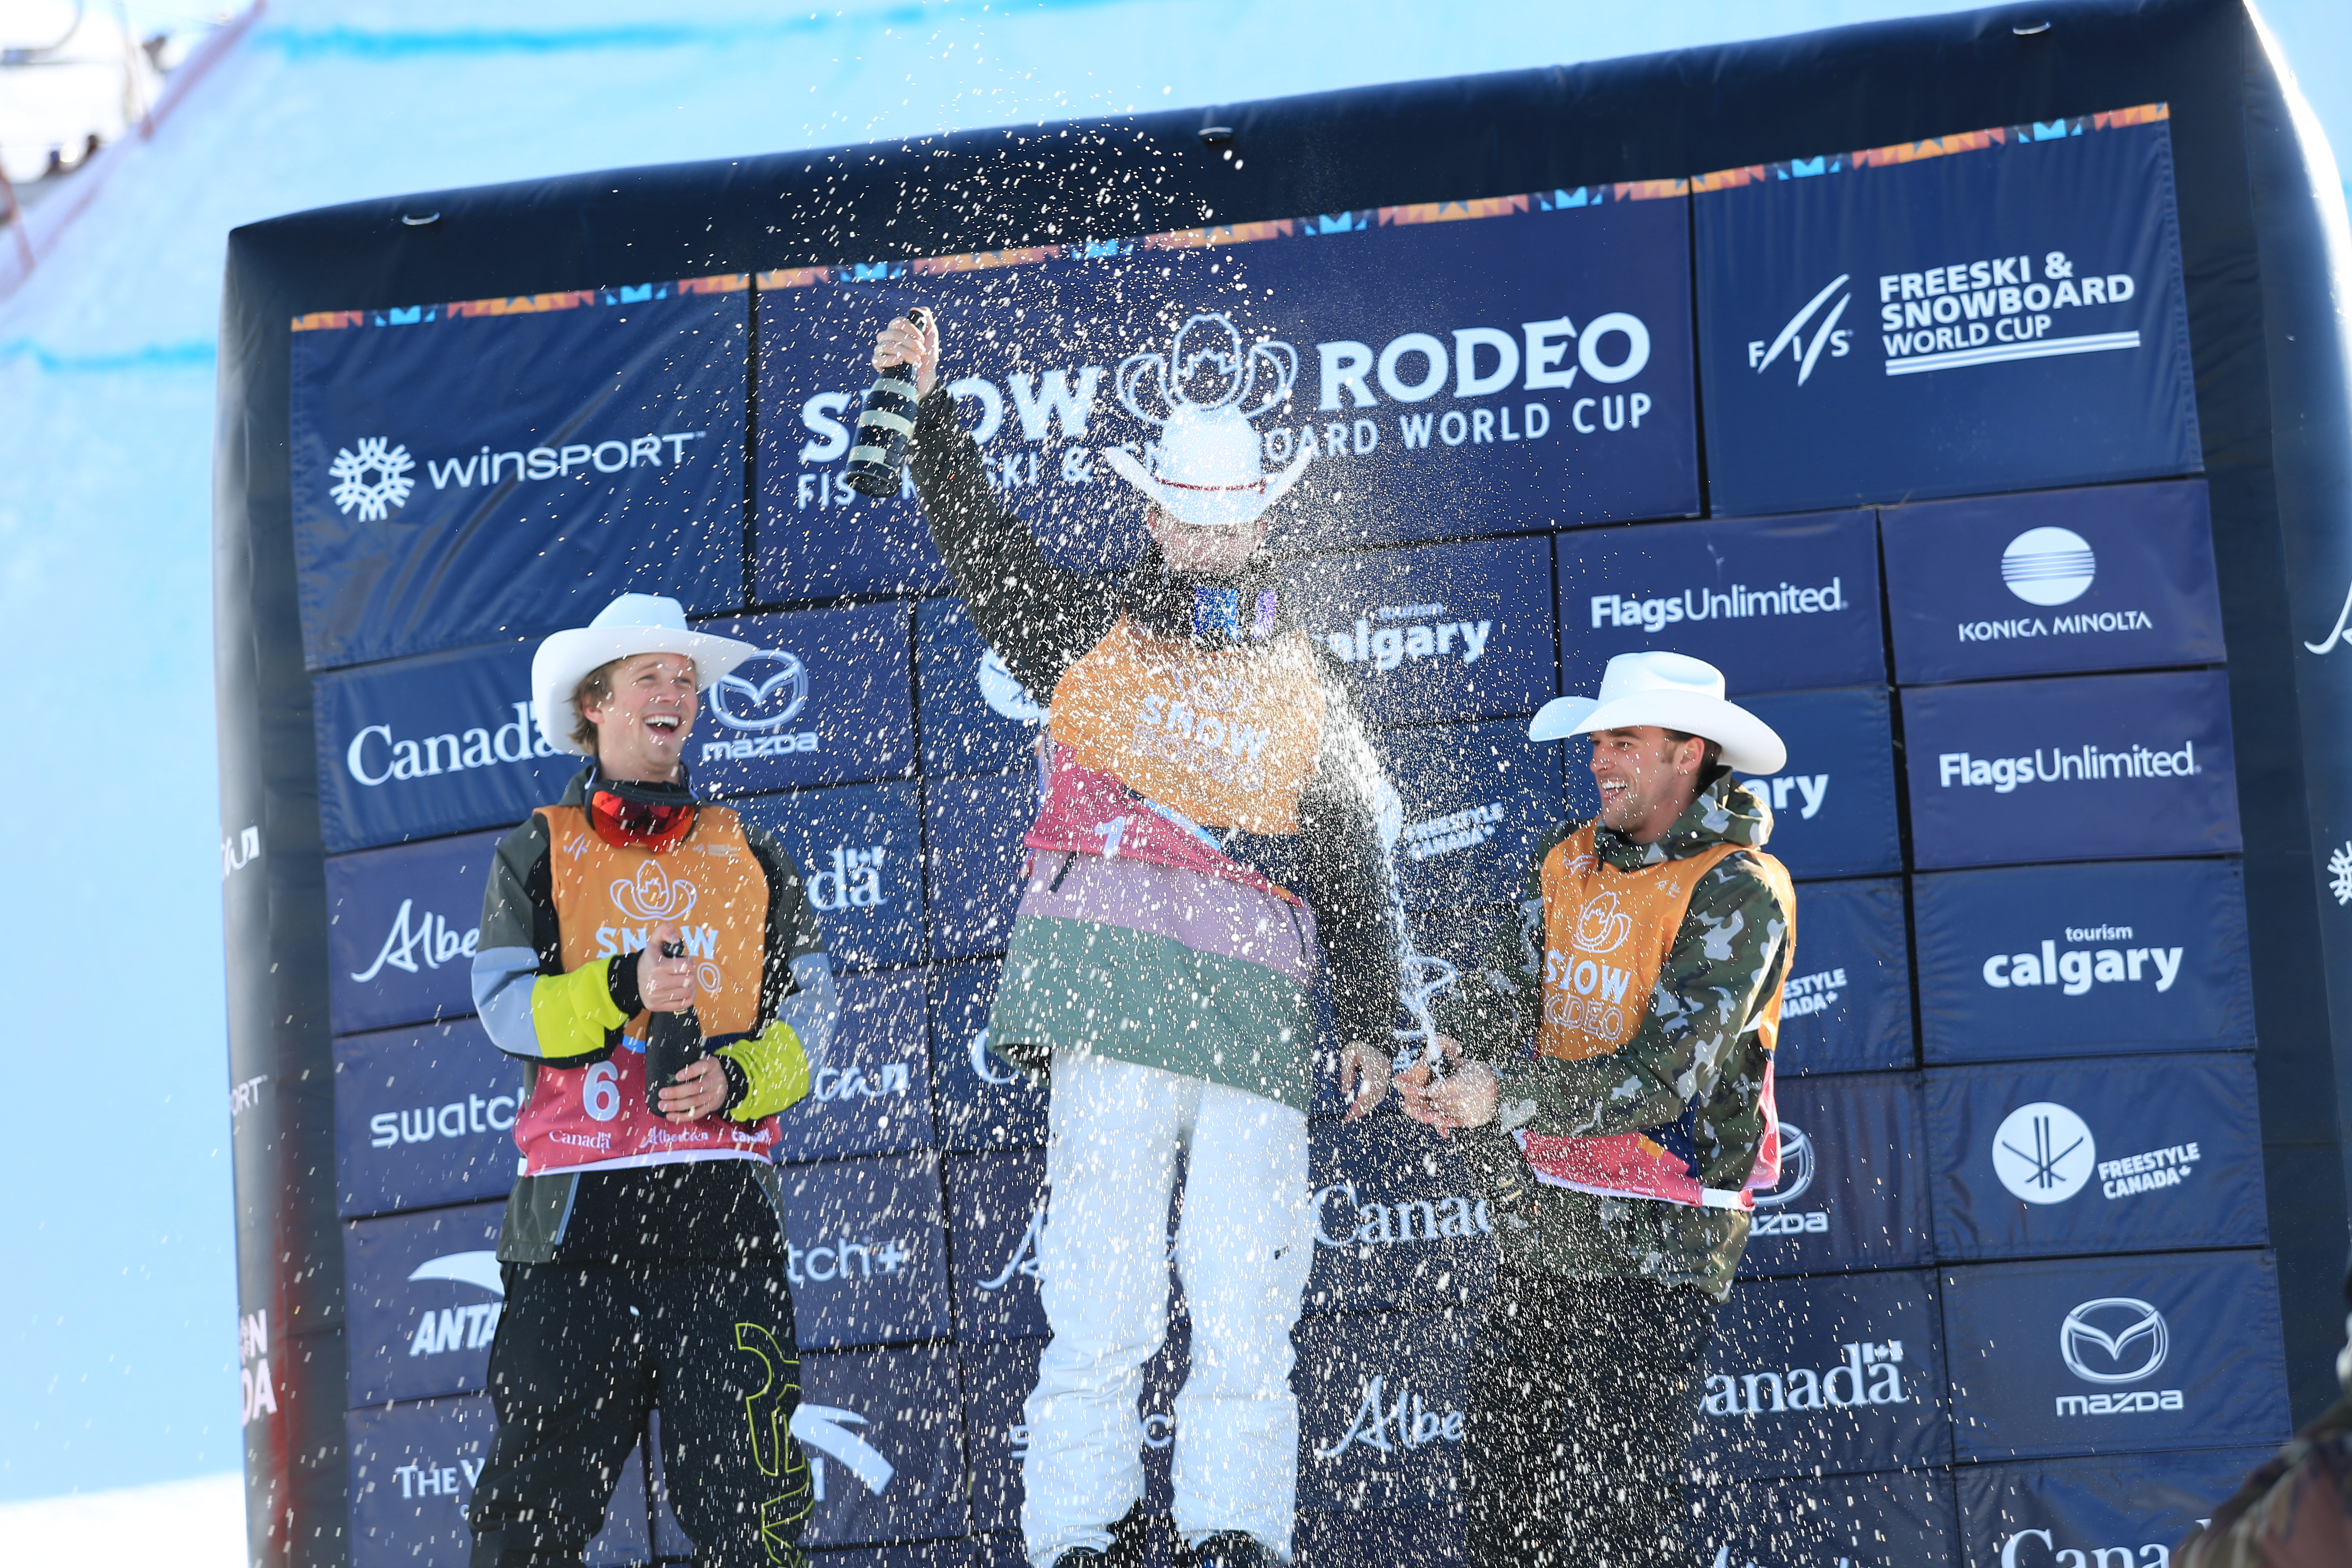 U.S Freeski Team Members Colby Stevenson (Left) and Nick Goepper (Right) stand atop the podium with Switzerland's Andri Ragettli (Center).